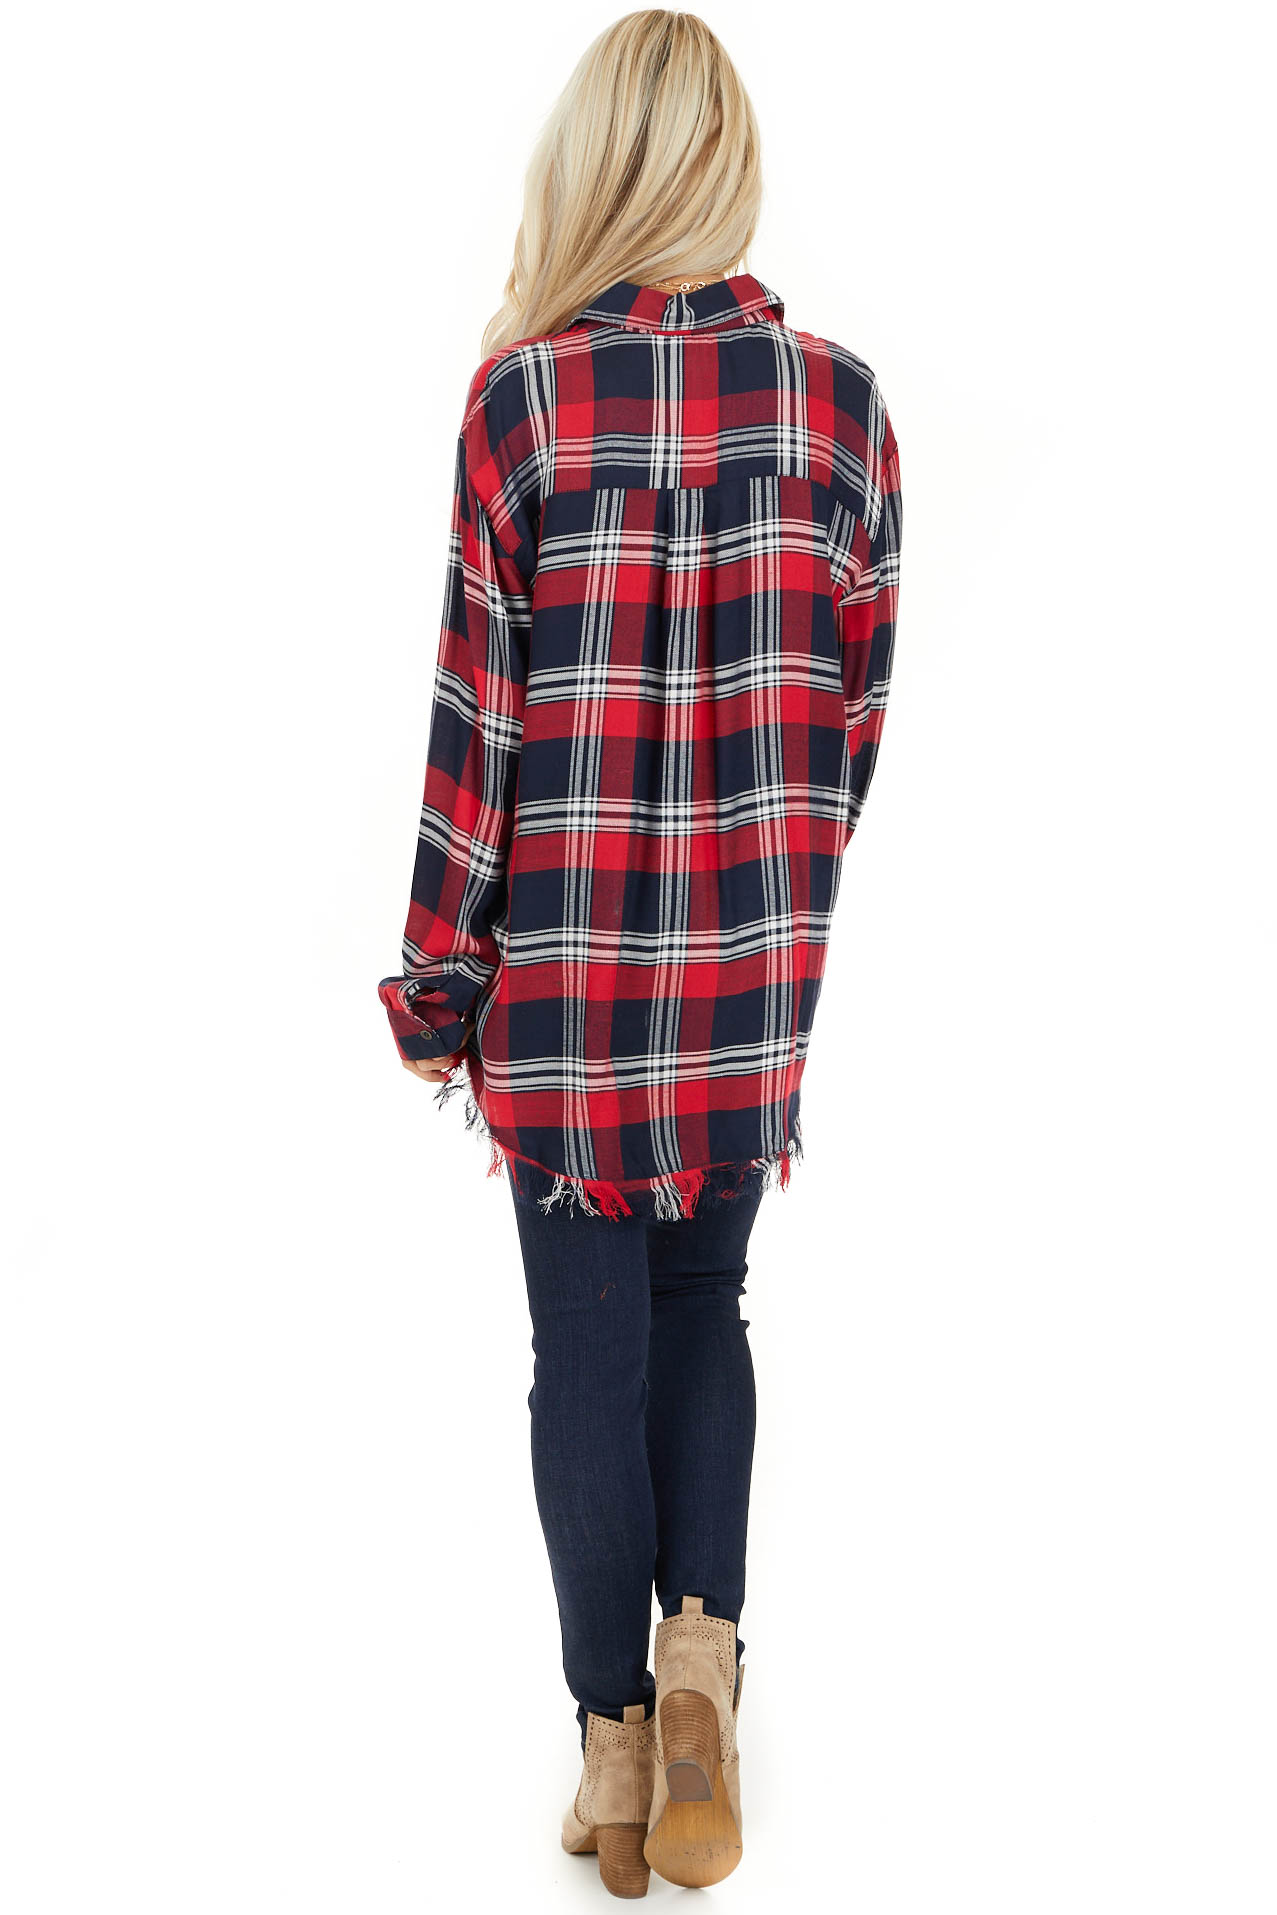 Lipstick Red and Navy Plaid Button Up Top with Long Sleeves back full body